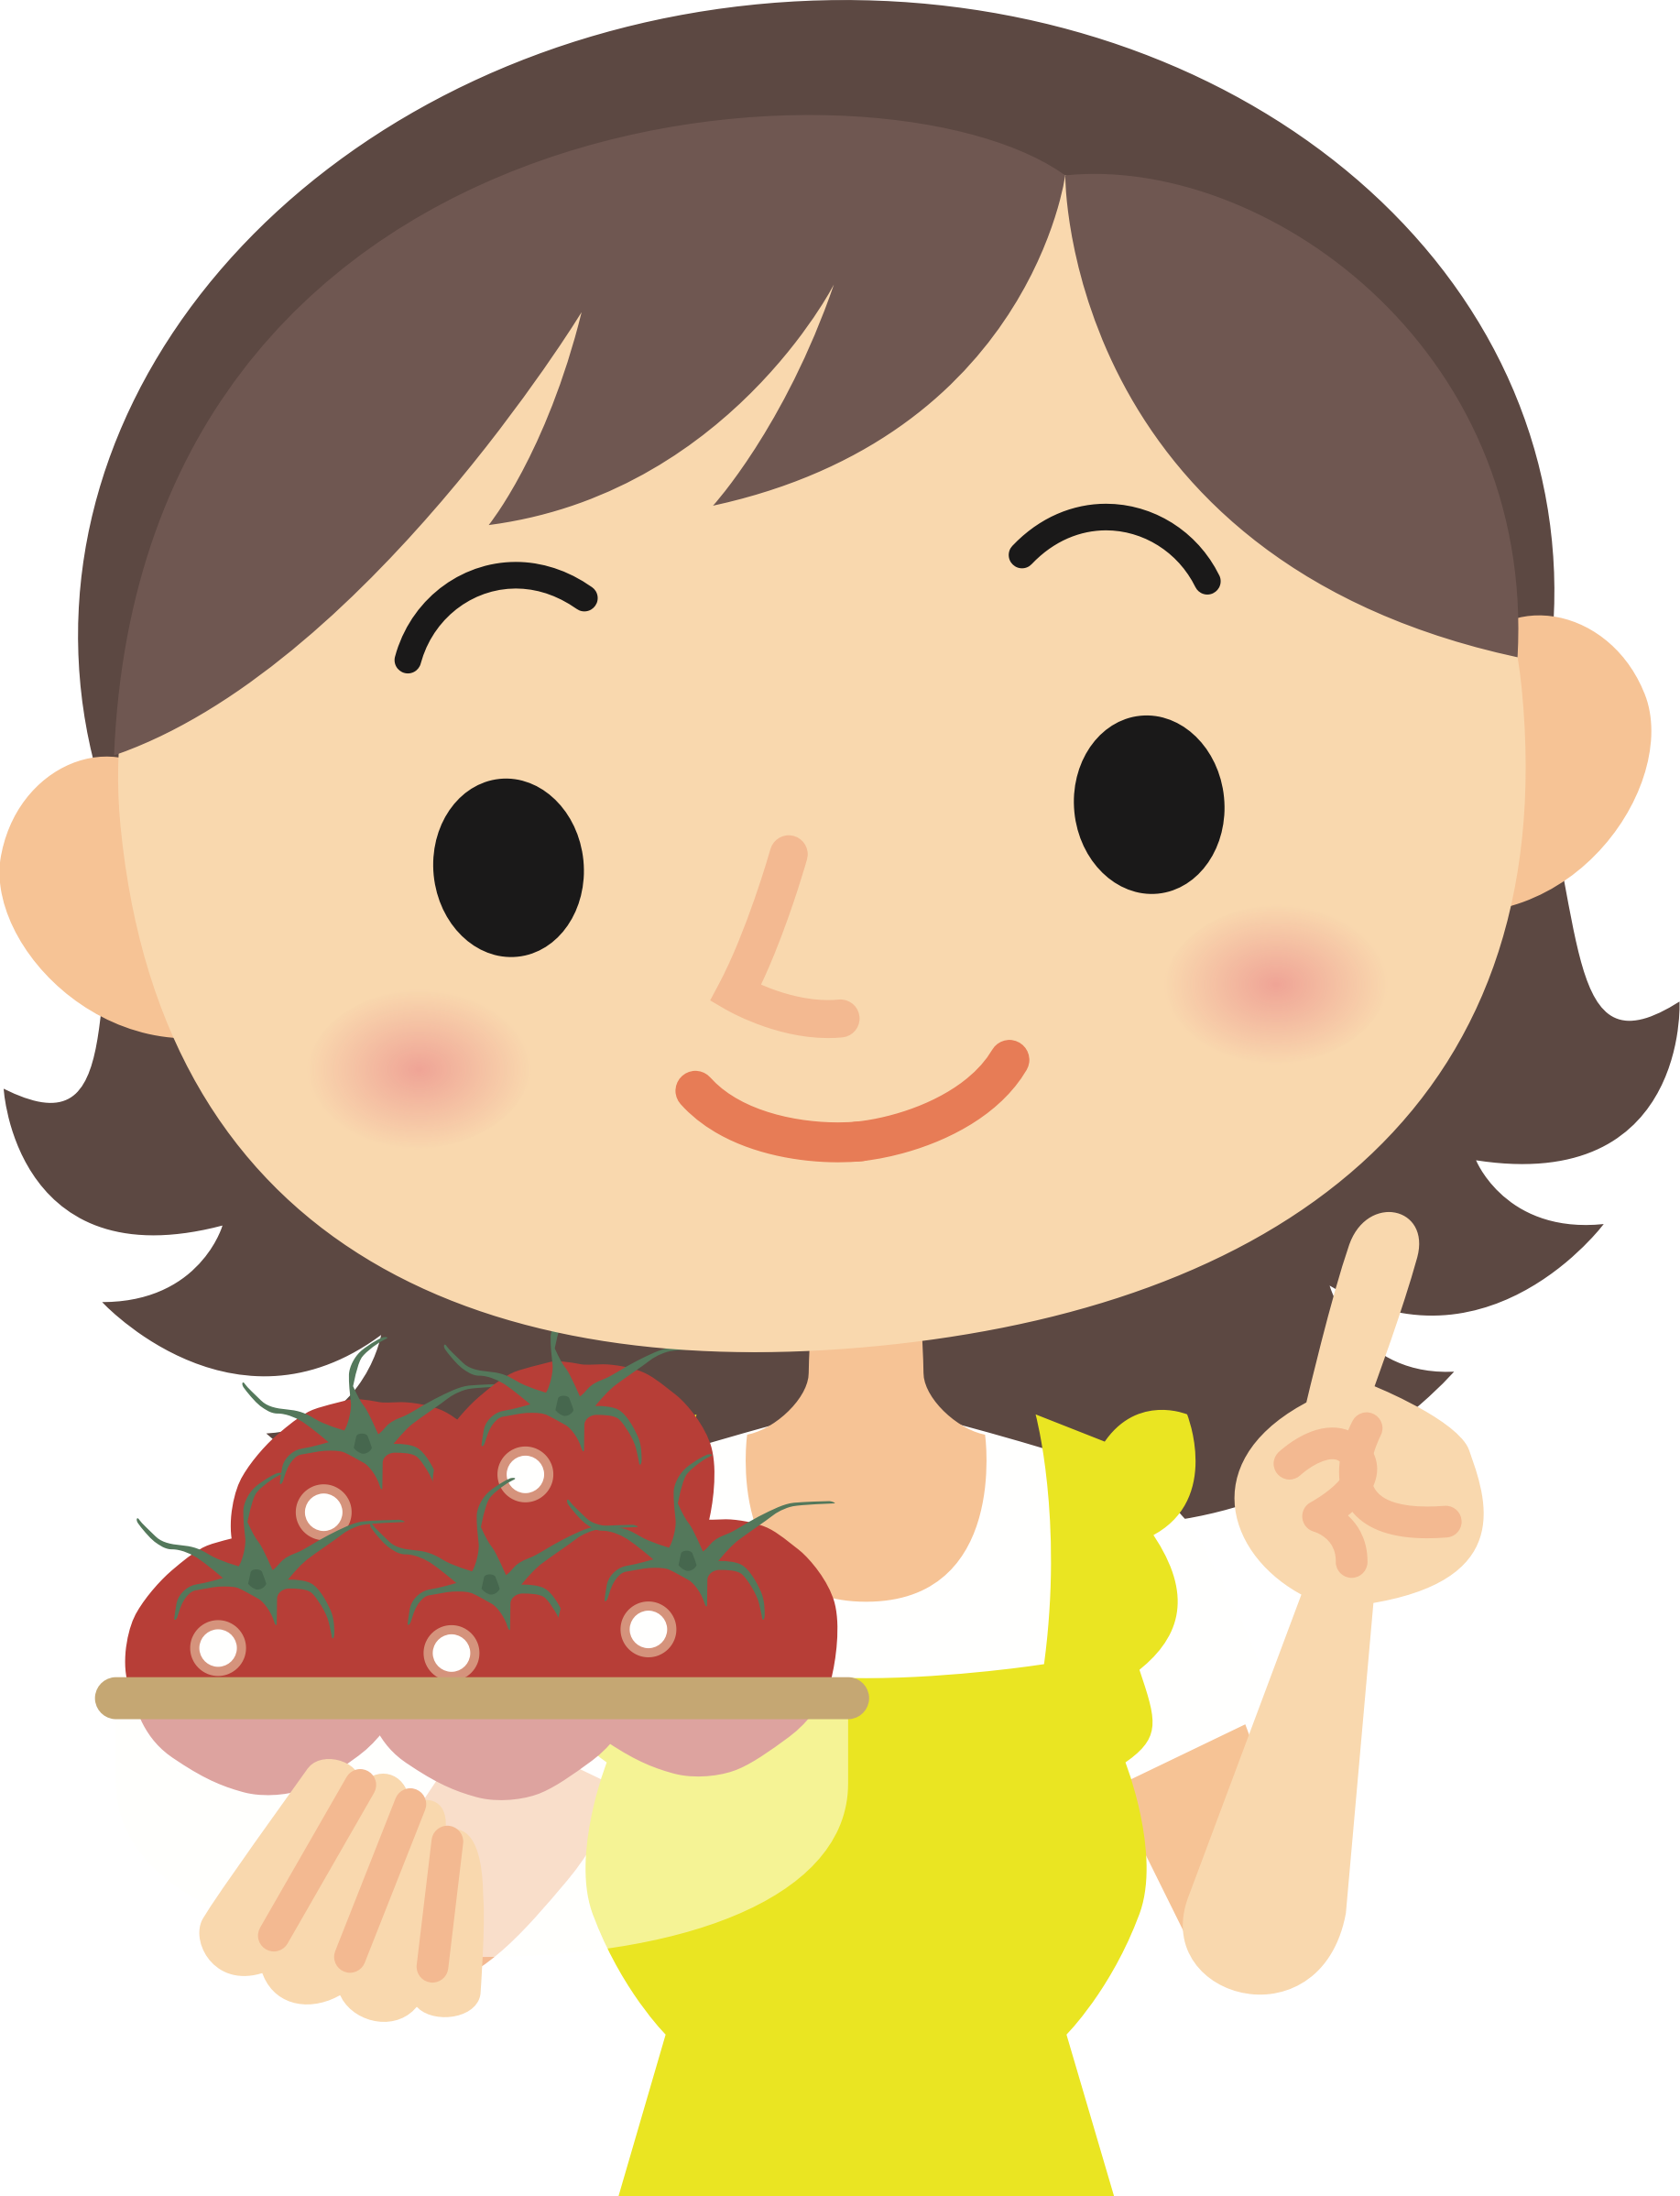 Tomatoes clipart happy tomato. Woman with big image